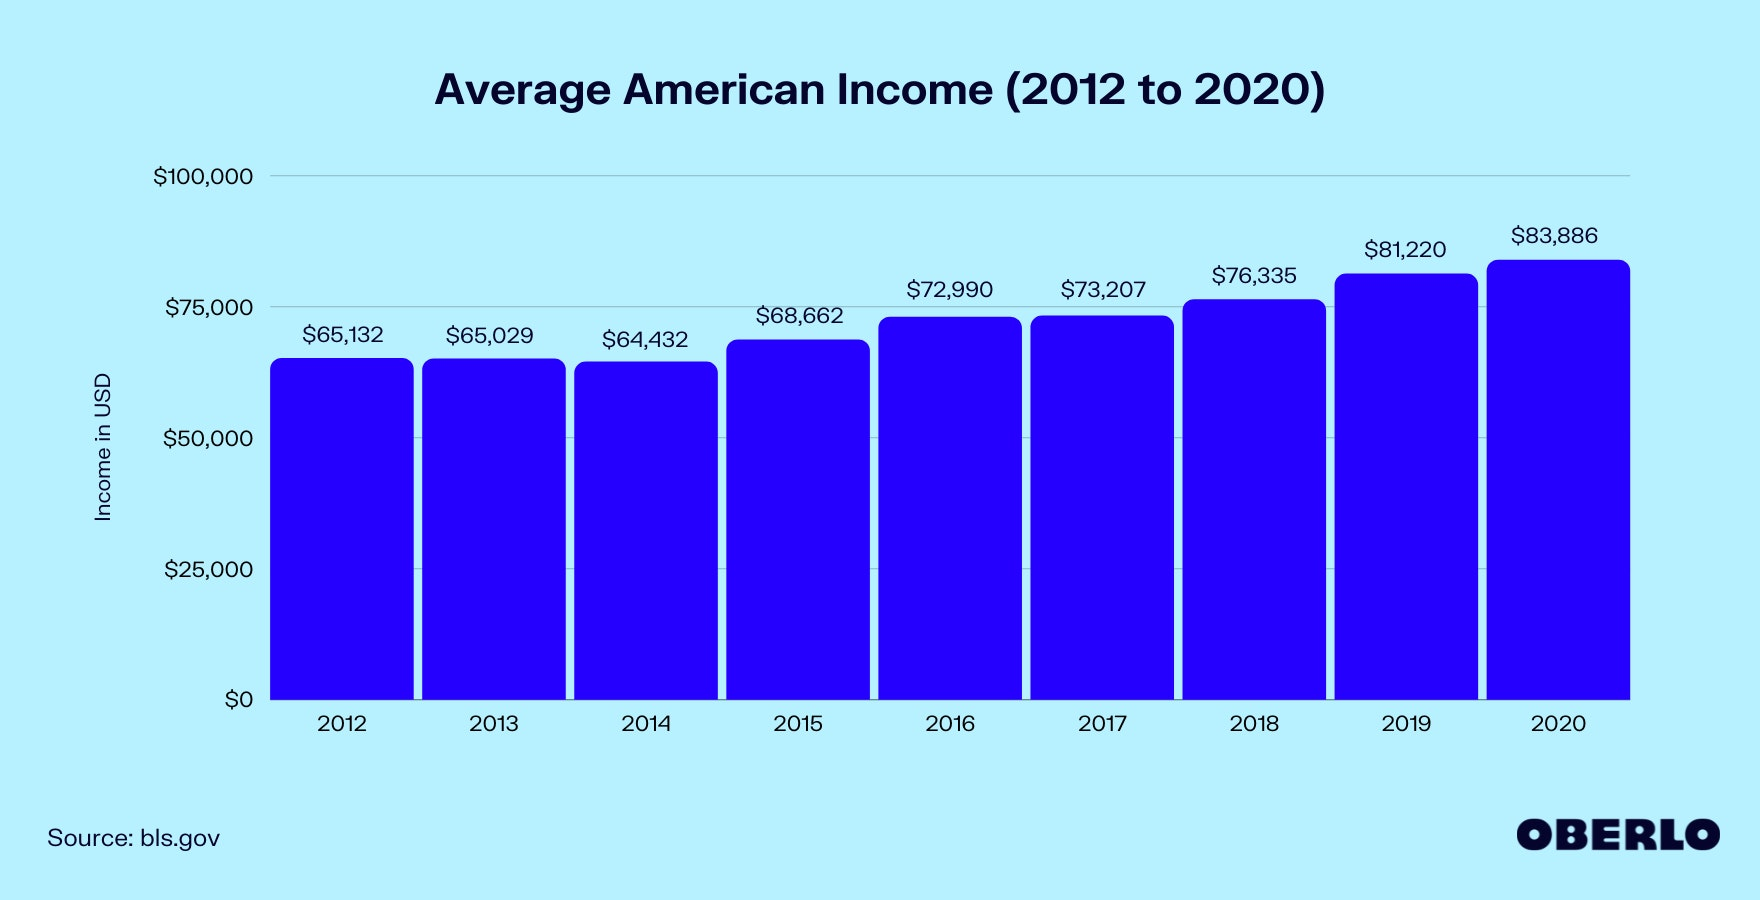 Chart of Average American Income (2012 to 2020)